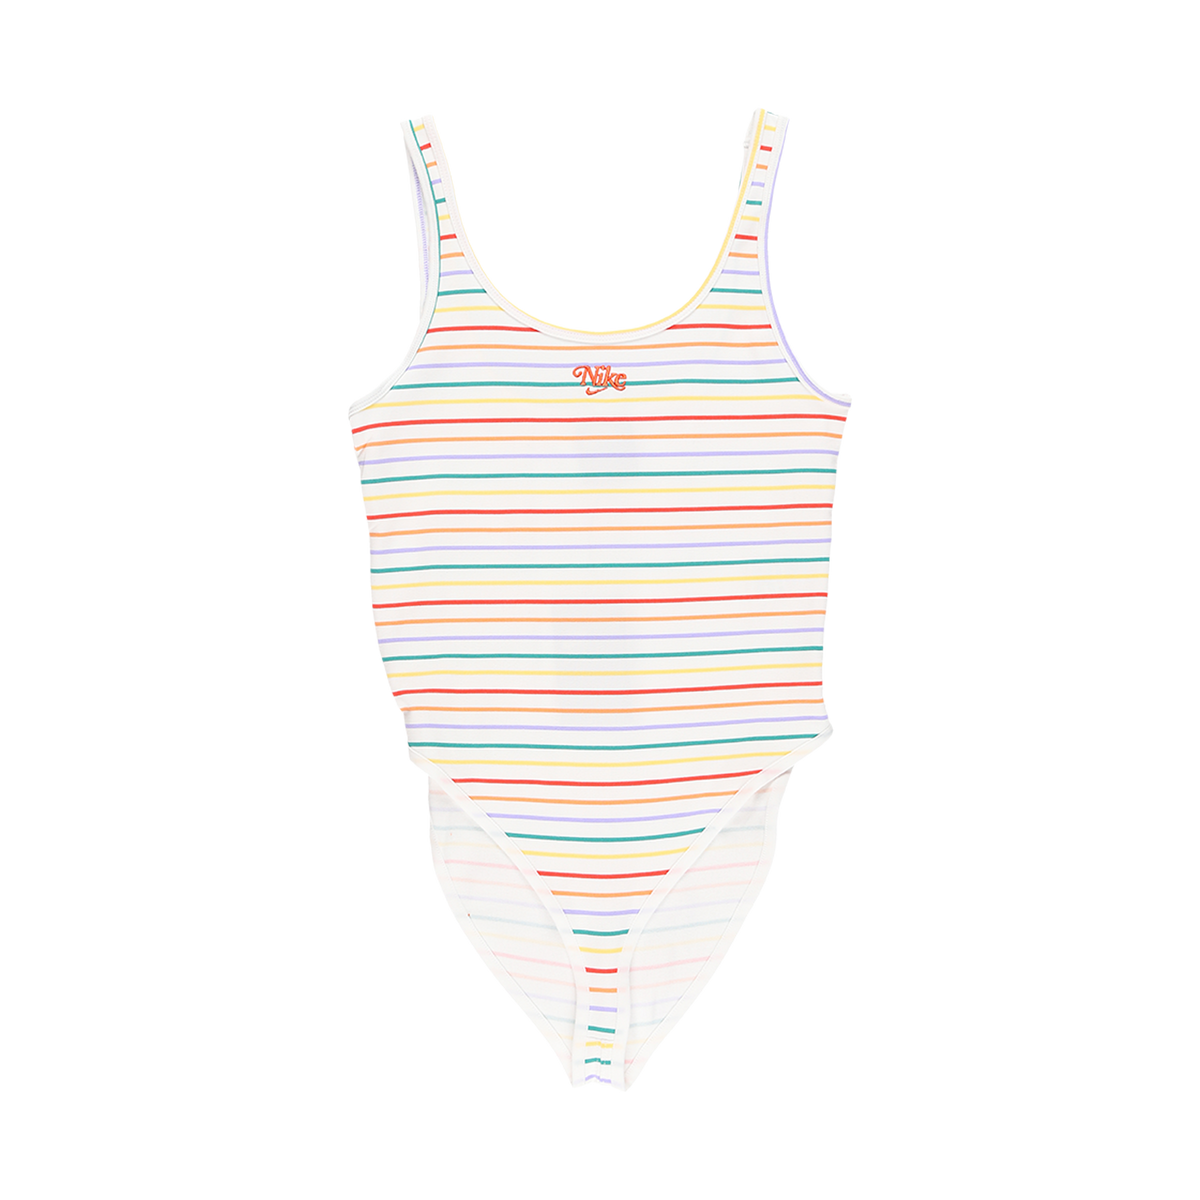 Nike Women's Striped Bodysuit  - XHIBITION